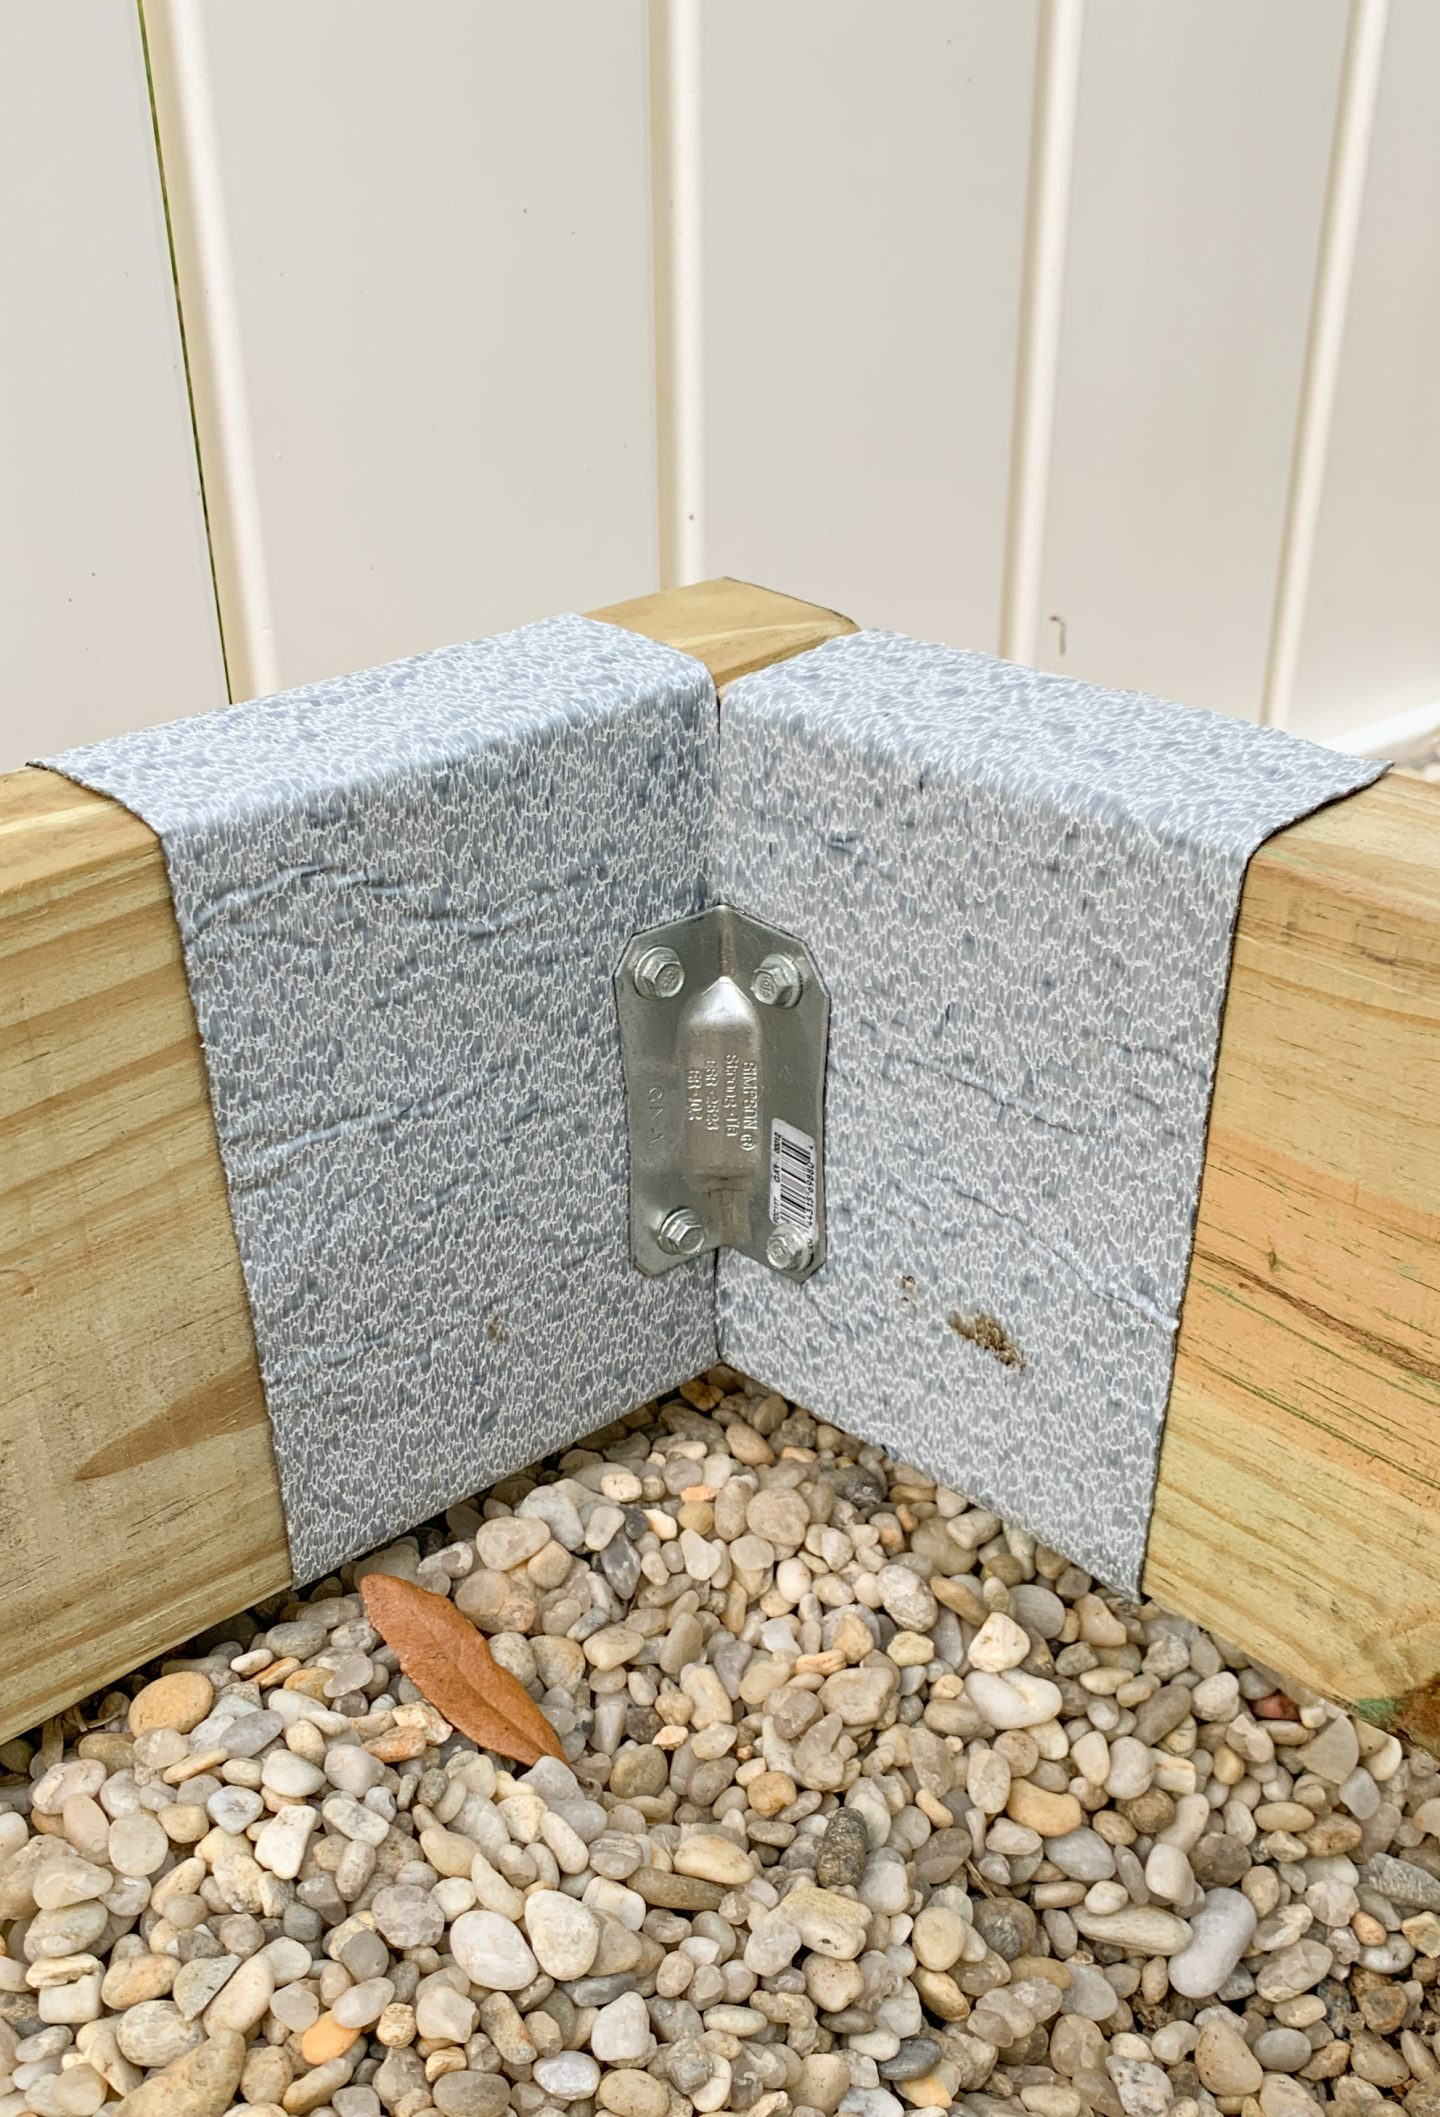 How to build a wood deck - installing corner brace